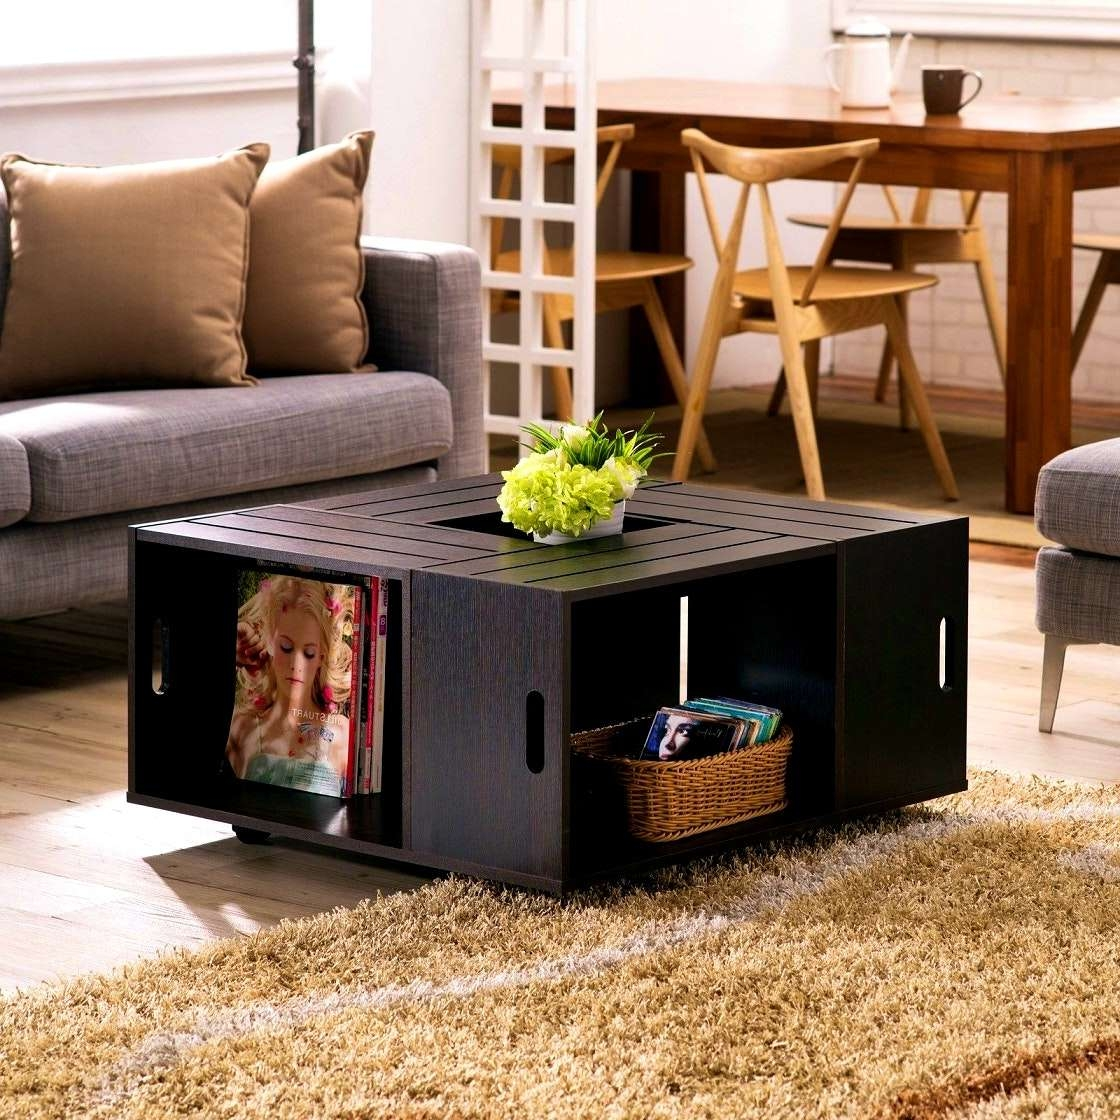 2018 Square Coffee Tables With Storages In Uncategorized (View 14 of 20)